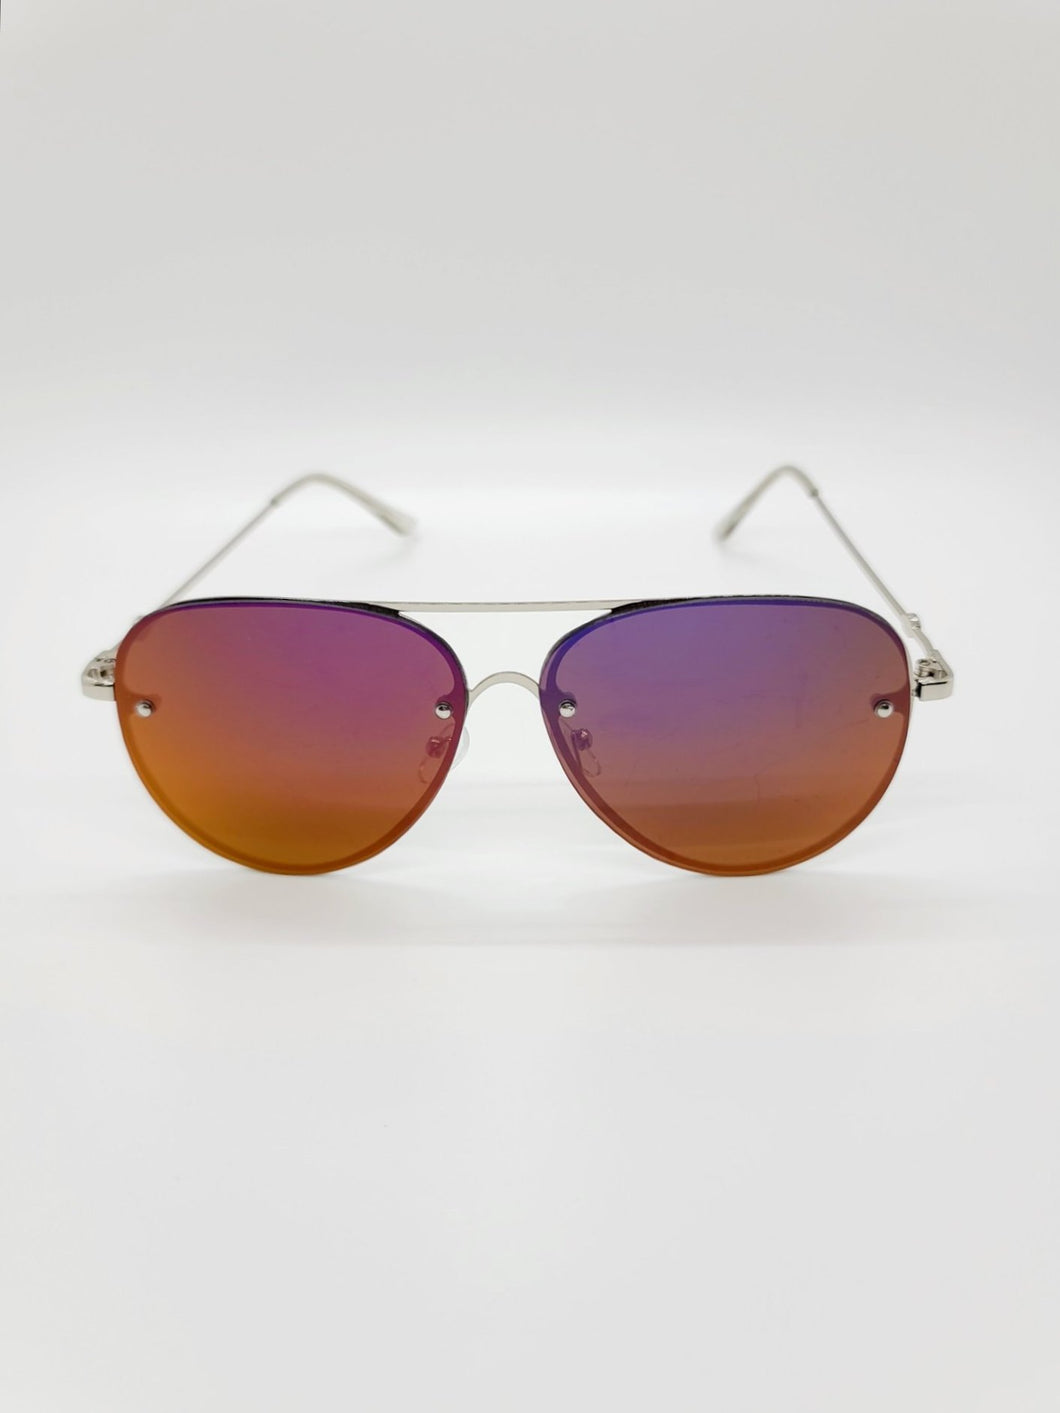 purple and yellow reflective frameless aviator style wire arm sunglasses